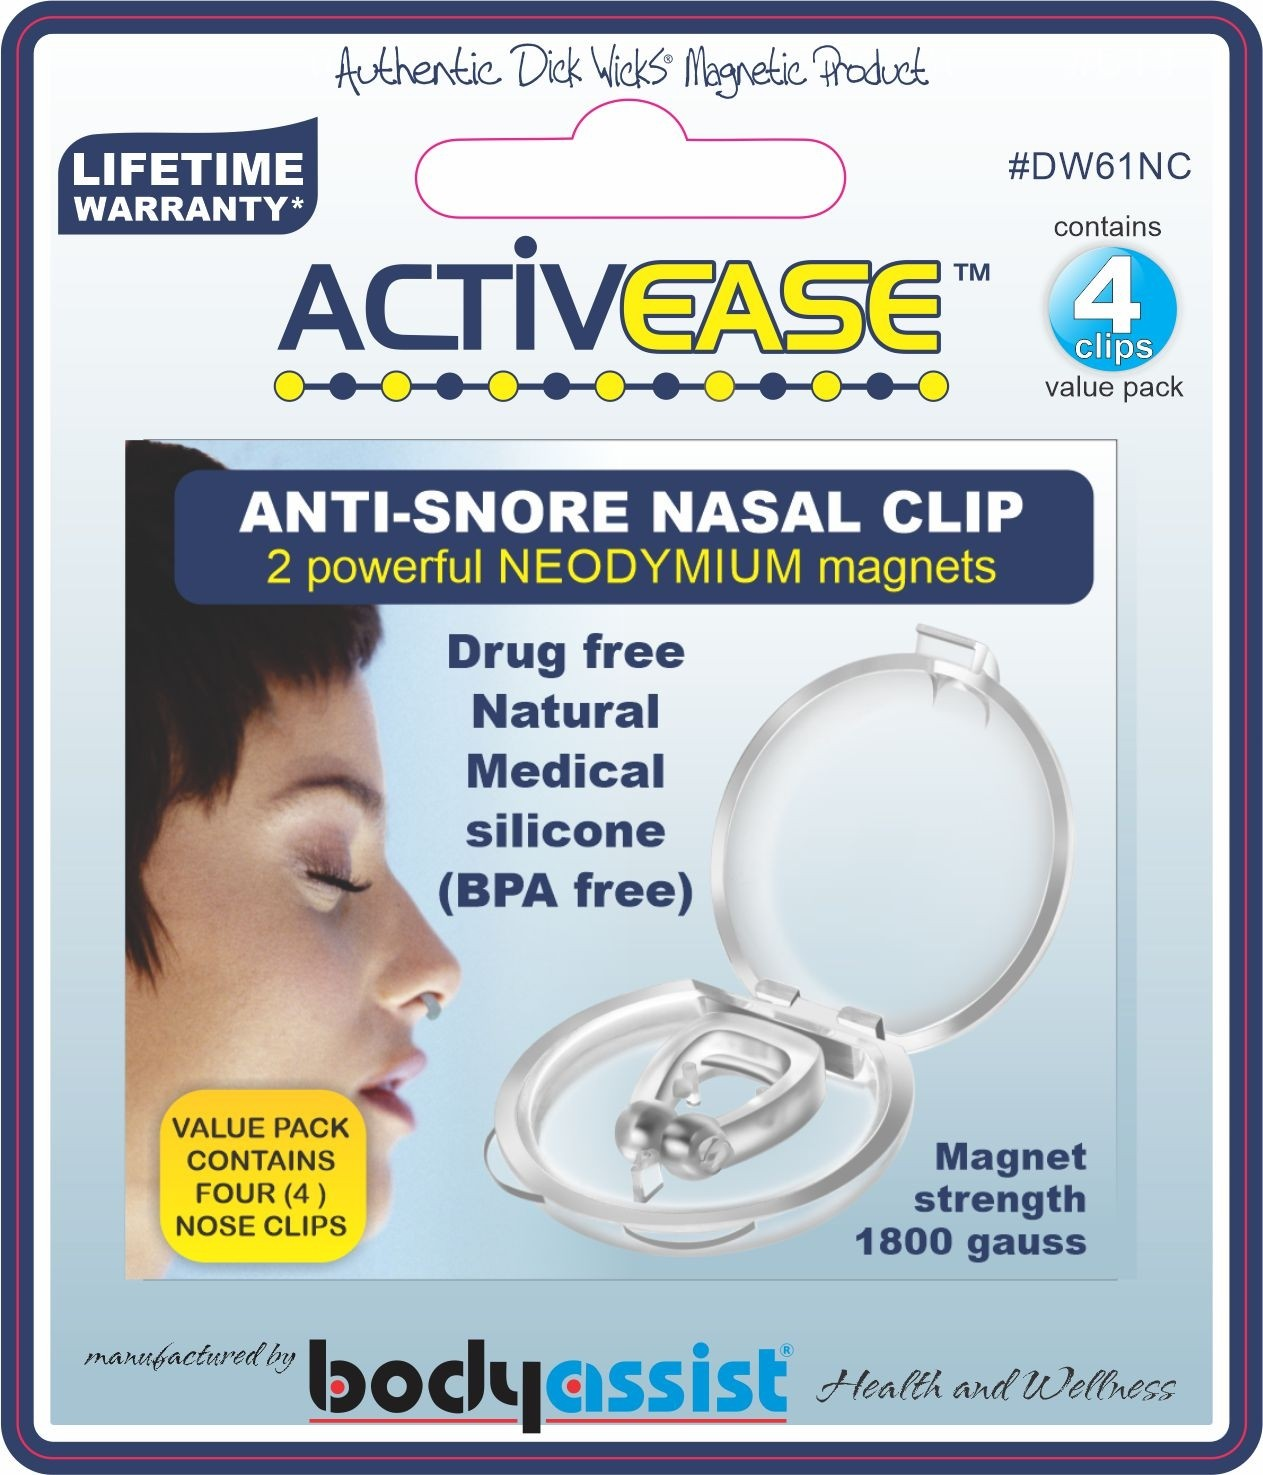 ANTI-SNORE NASAL CLIP MAGNETISED (contains 4 nose clips)